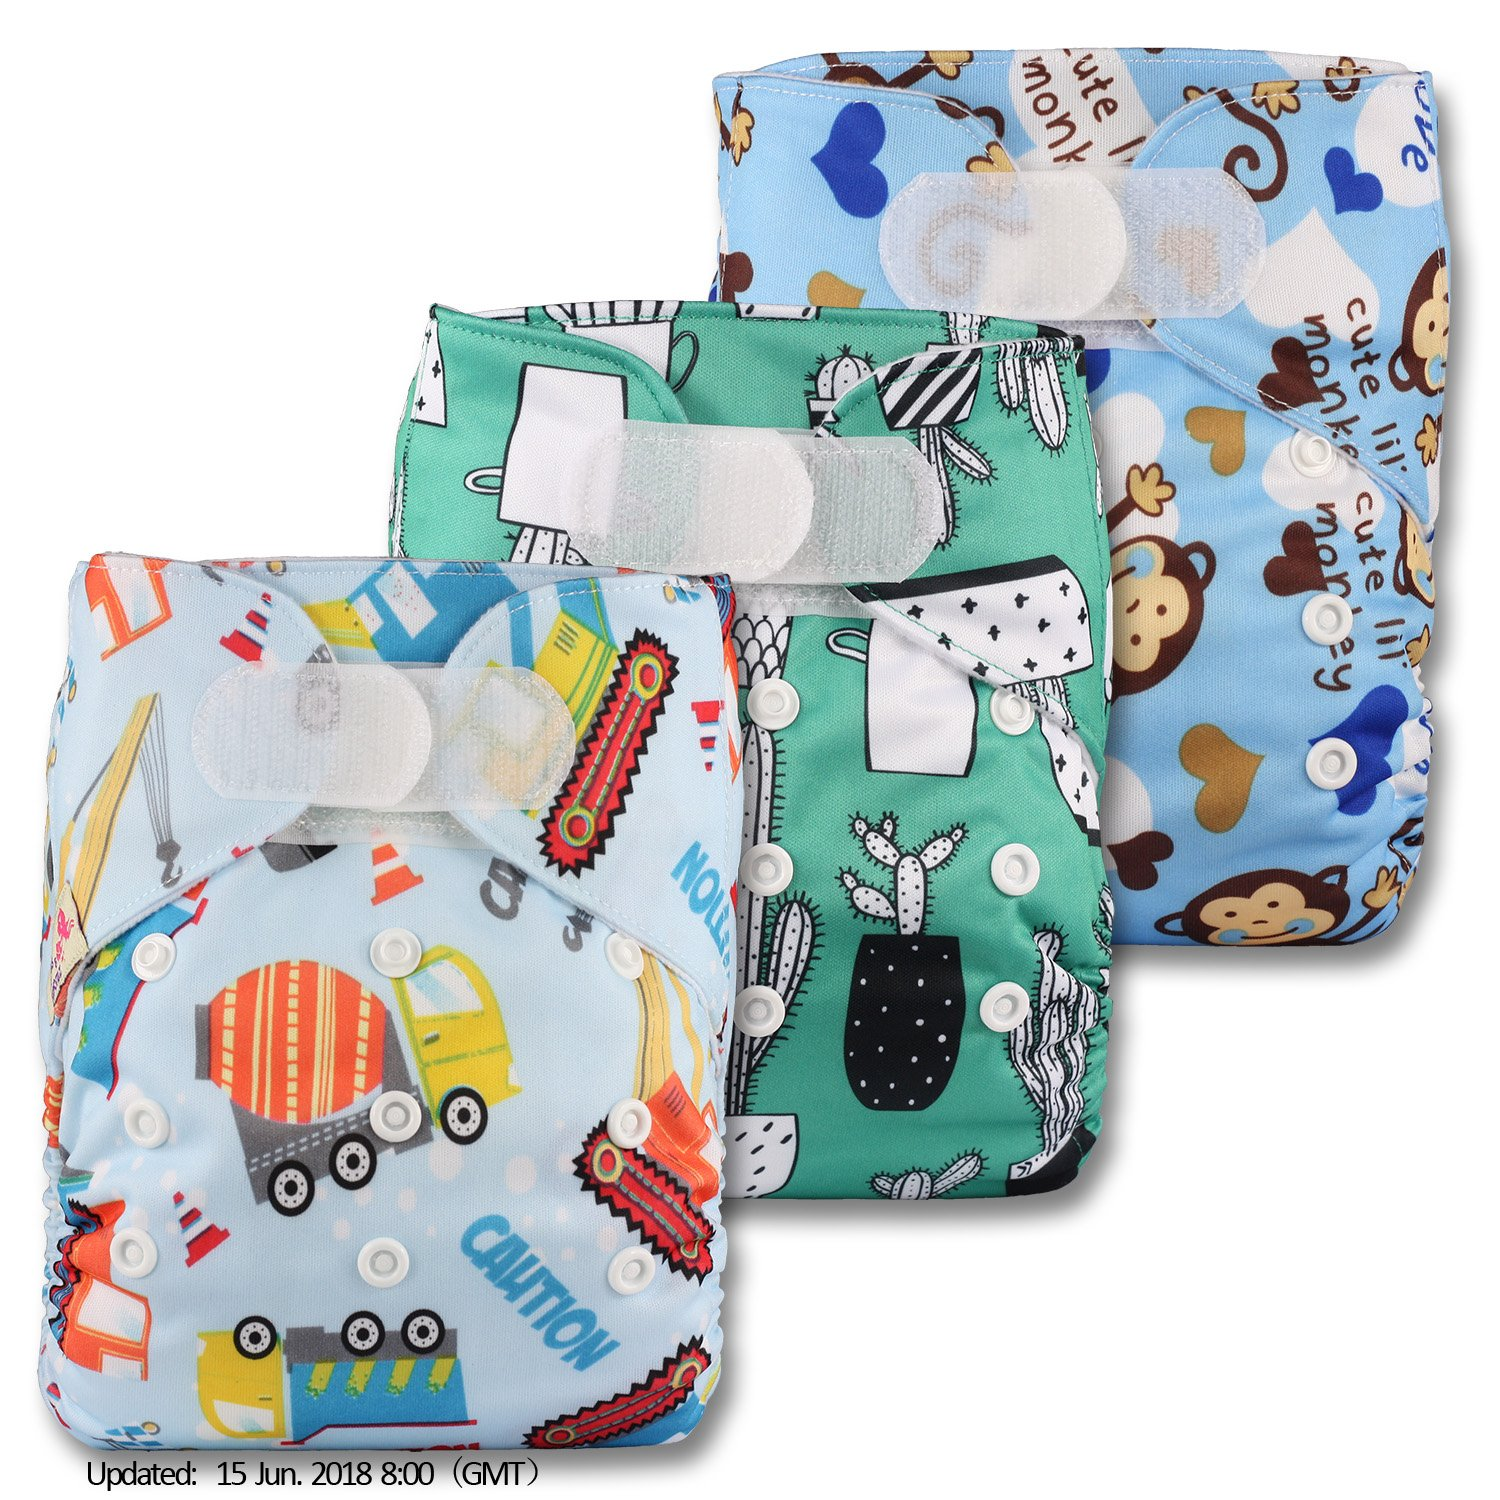 Littles & Bloomz, Reusable Pocket Cloth Nappy, Fastener: Hook-Loop, Set of 3, Patterns 304, With 6 Bamboo Inserts